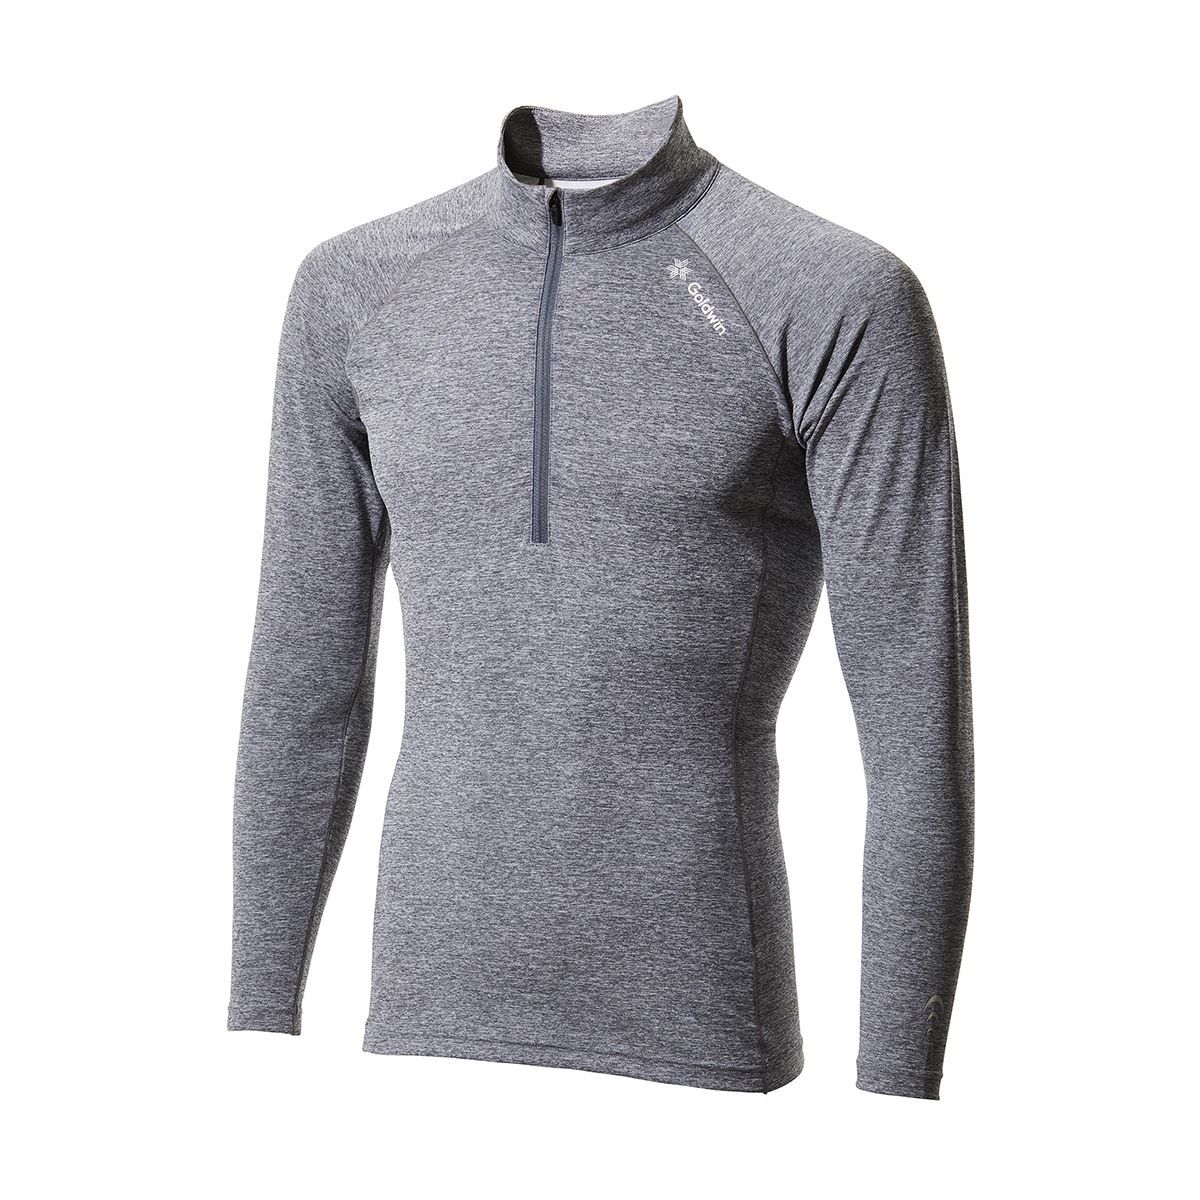 ADVANCE WARM ZIP UP LONG SLEEVES